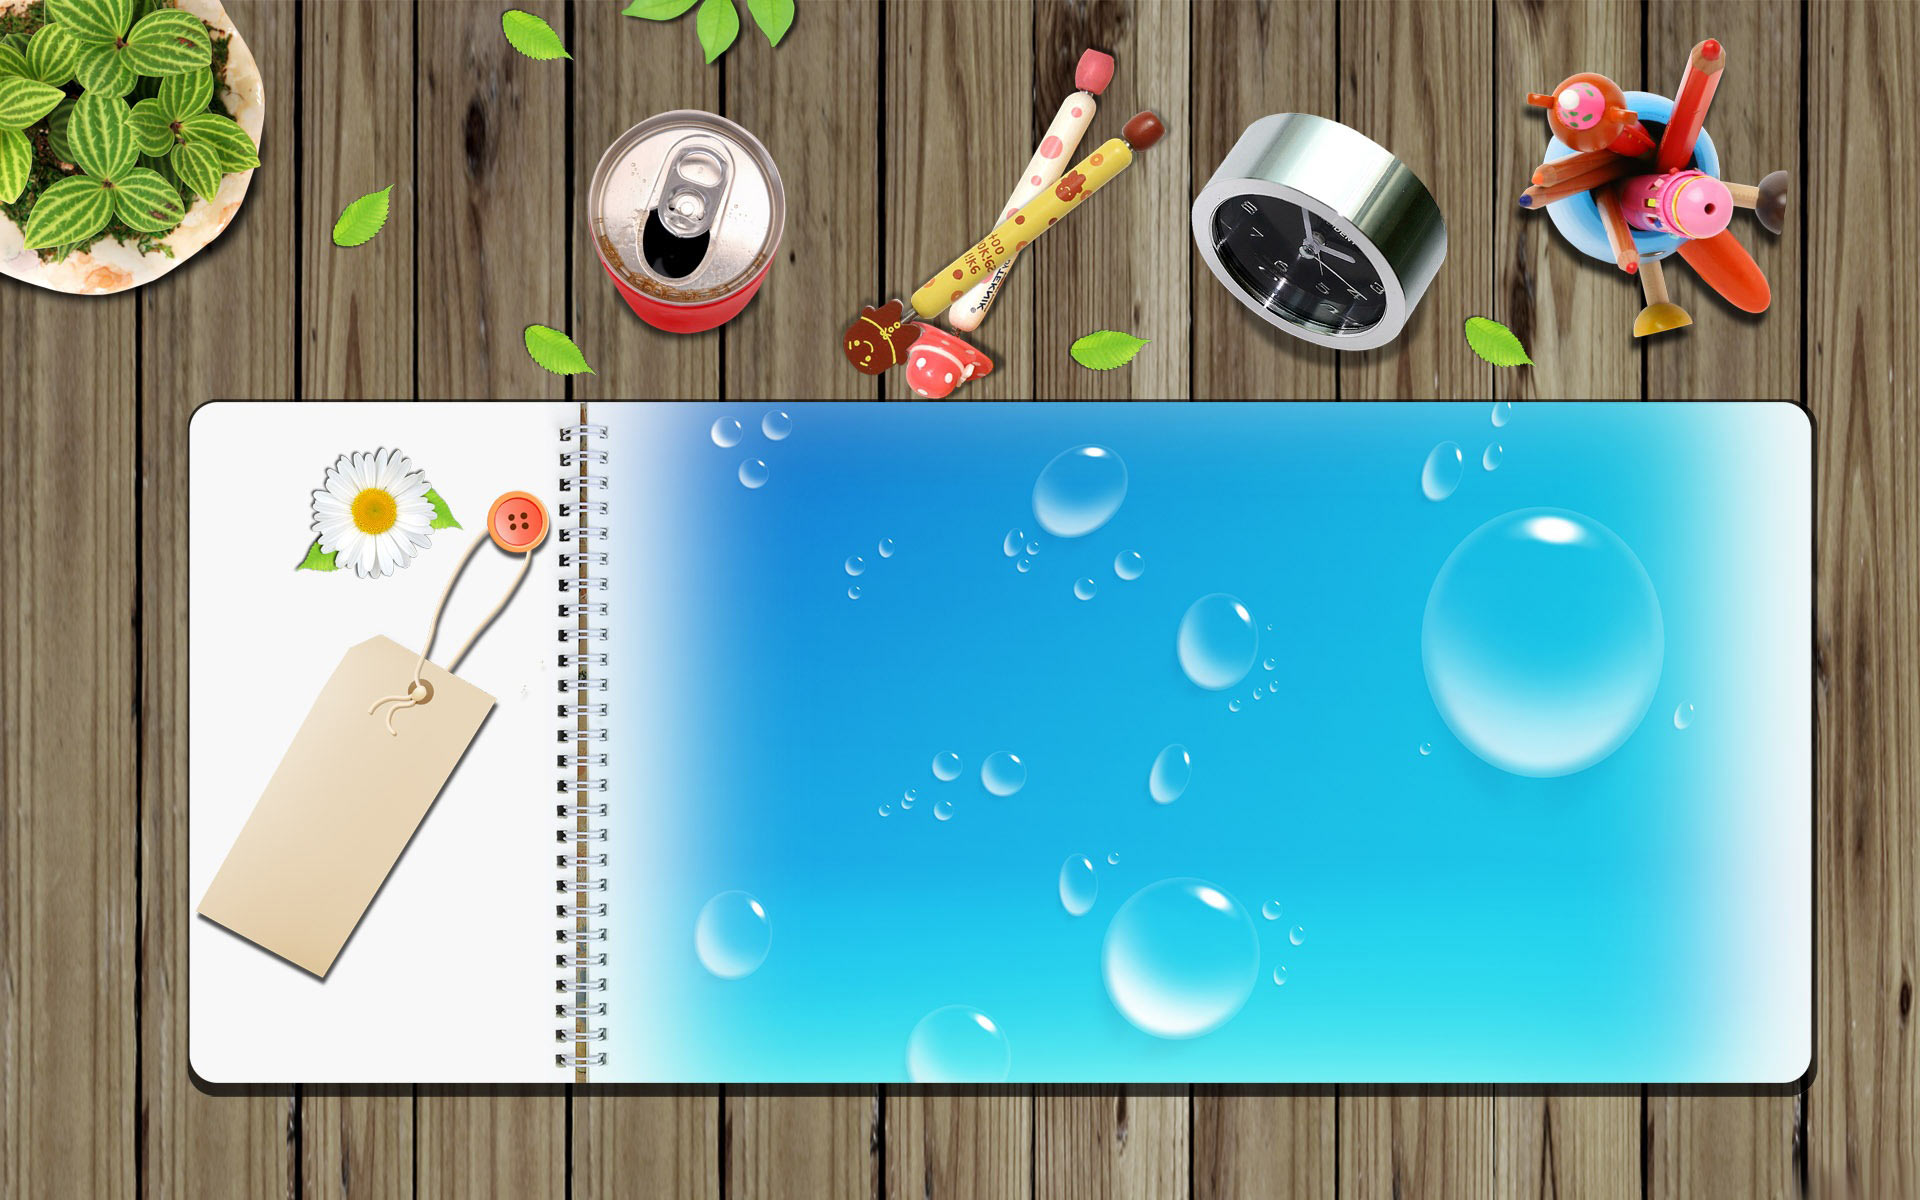 Windows personal backgrounds wallpapers. Notebook clipart diary png royalty free download